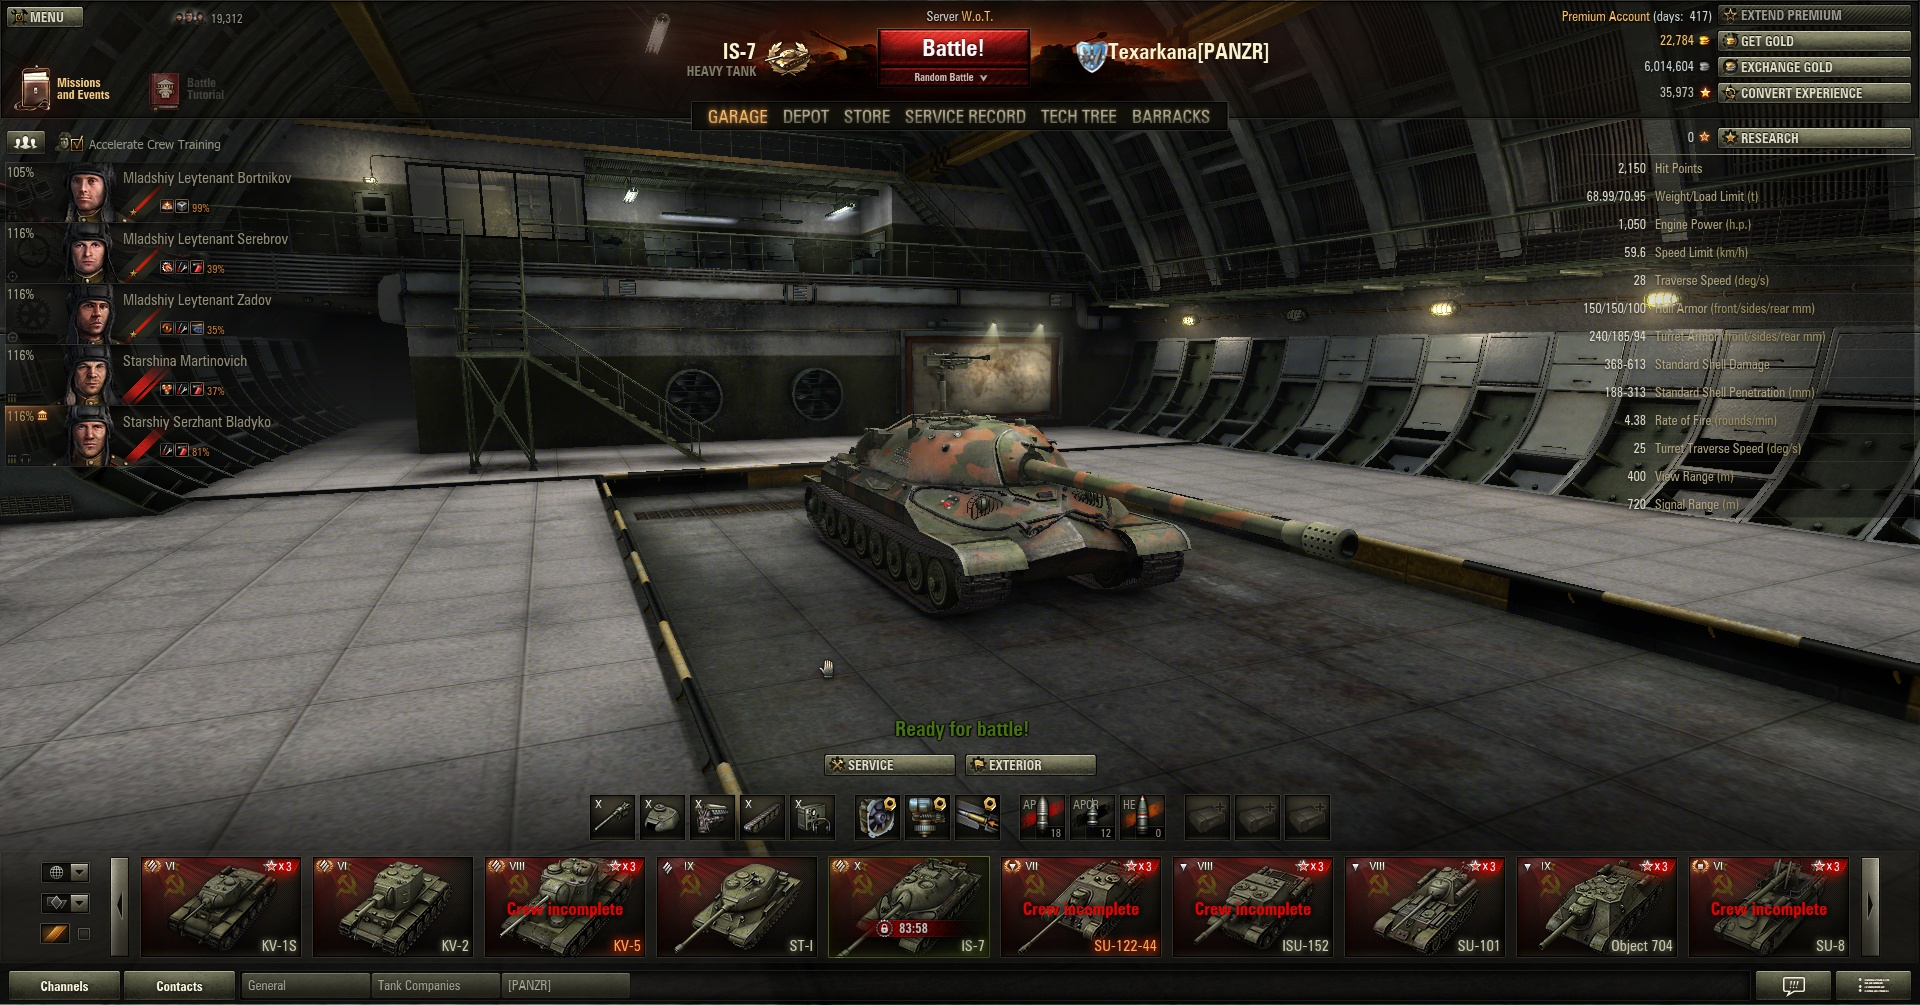 World of tanks matchmaking table